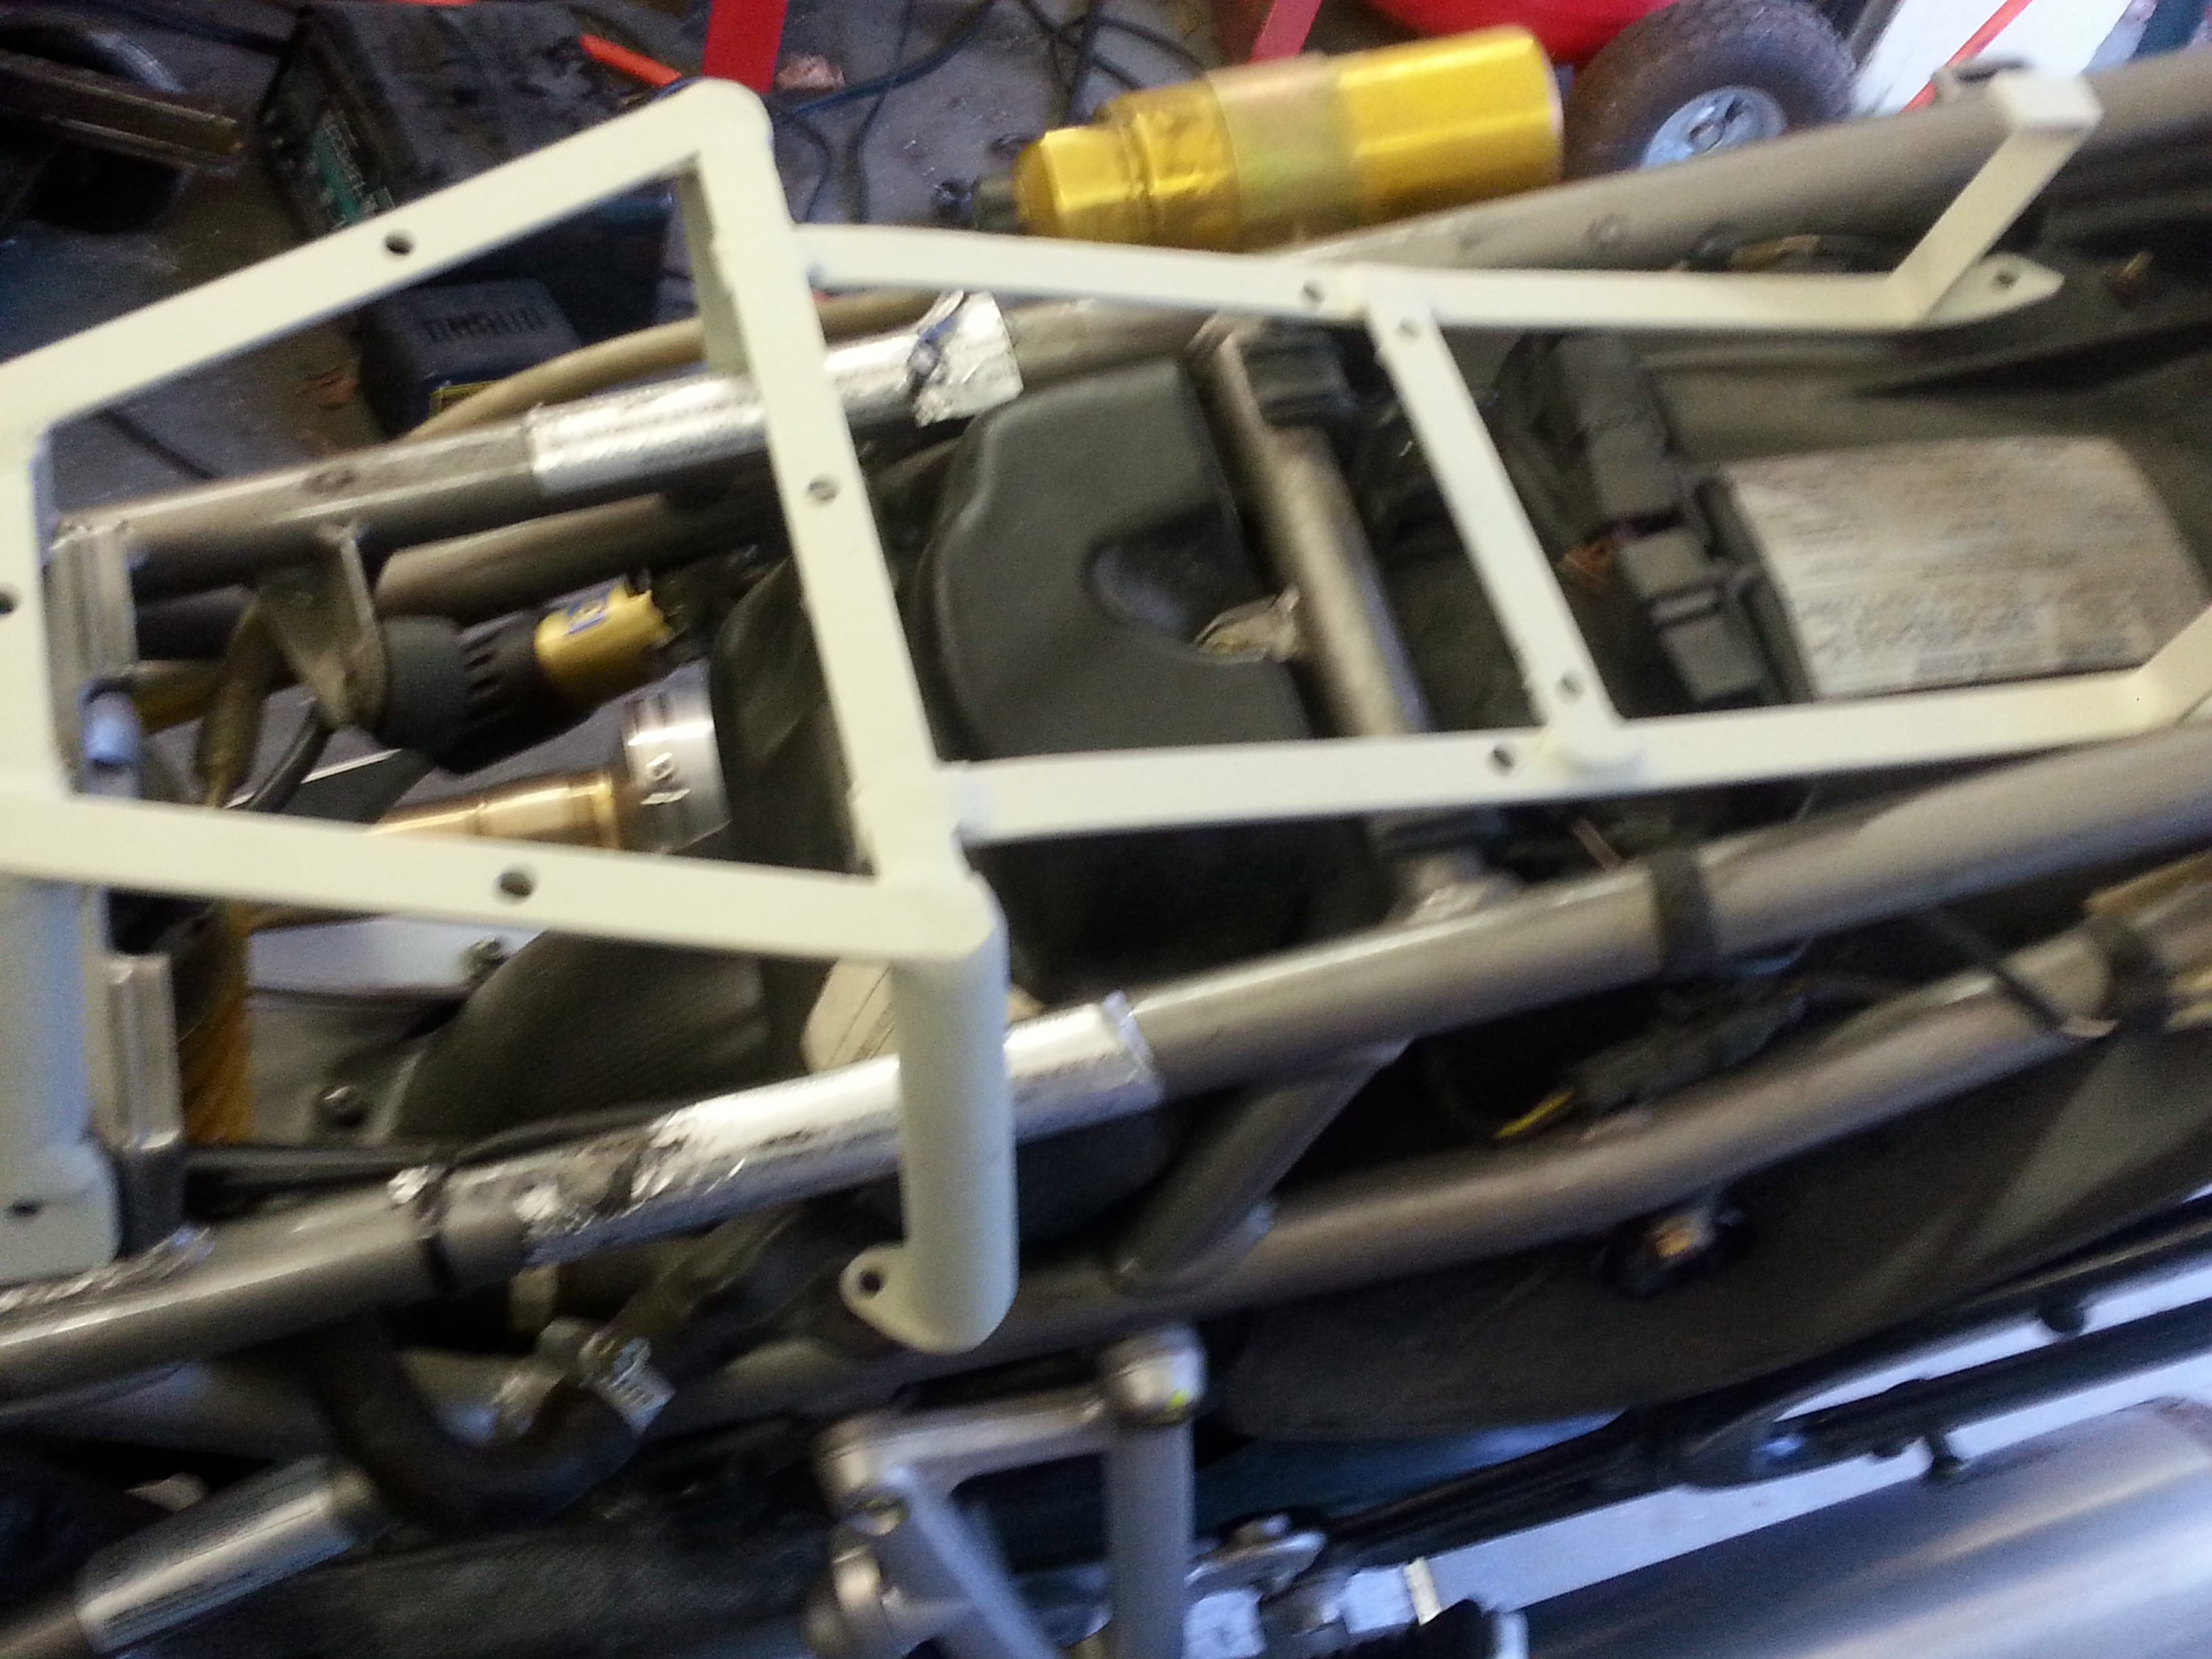 2002 Ducati St4s Build St2 Fuse Box Location Attached Images